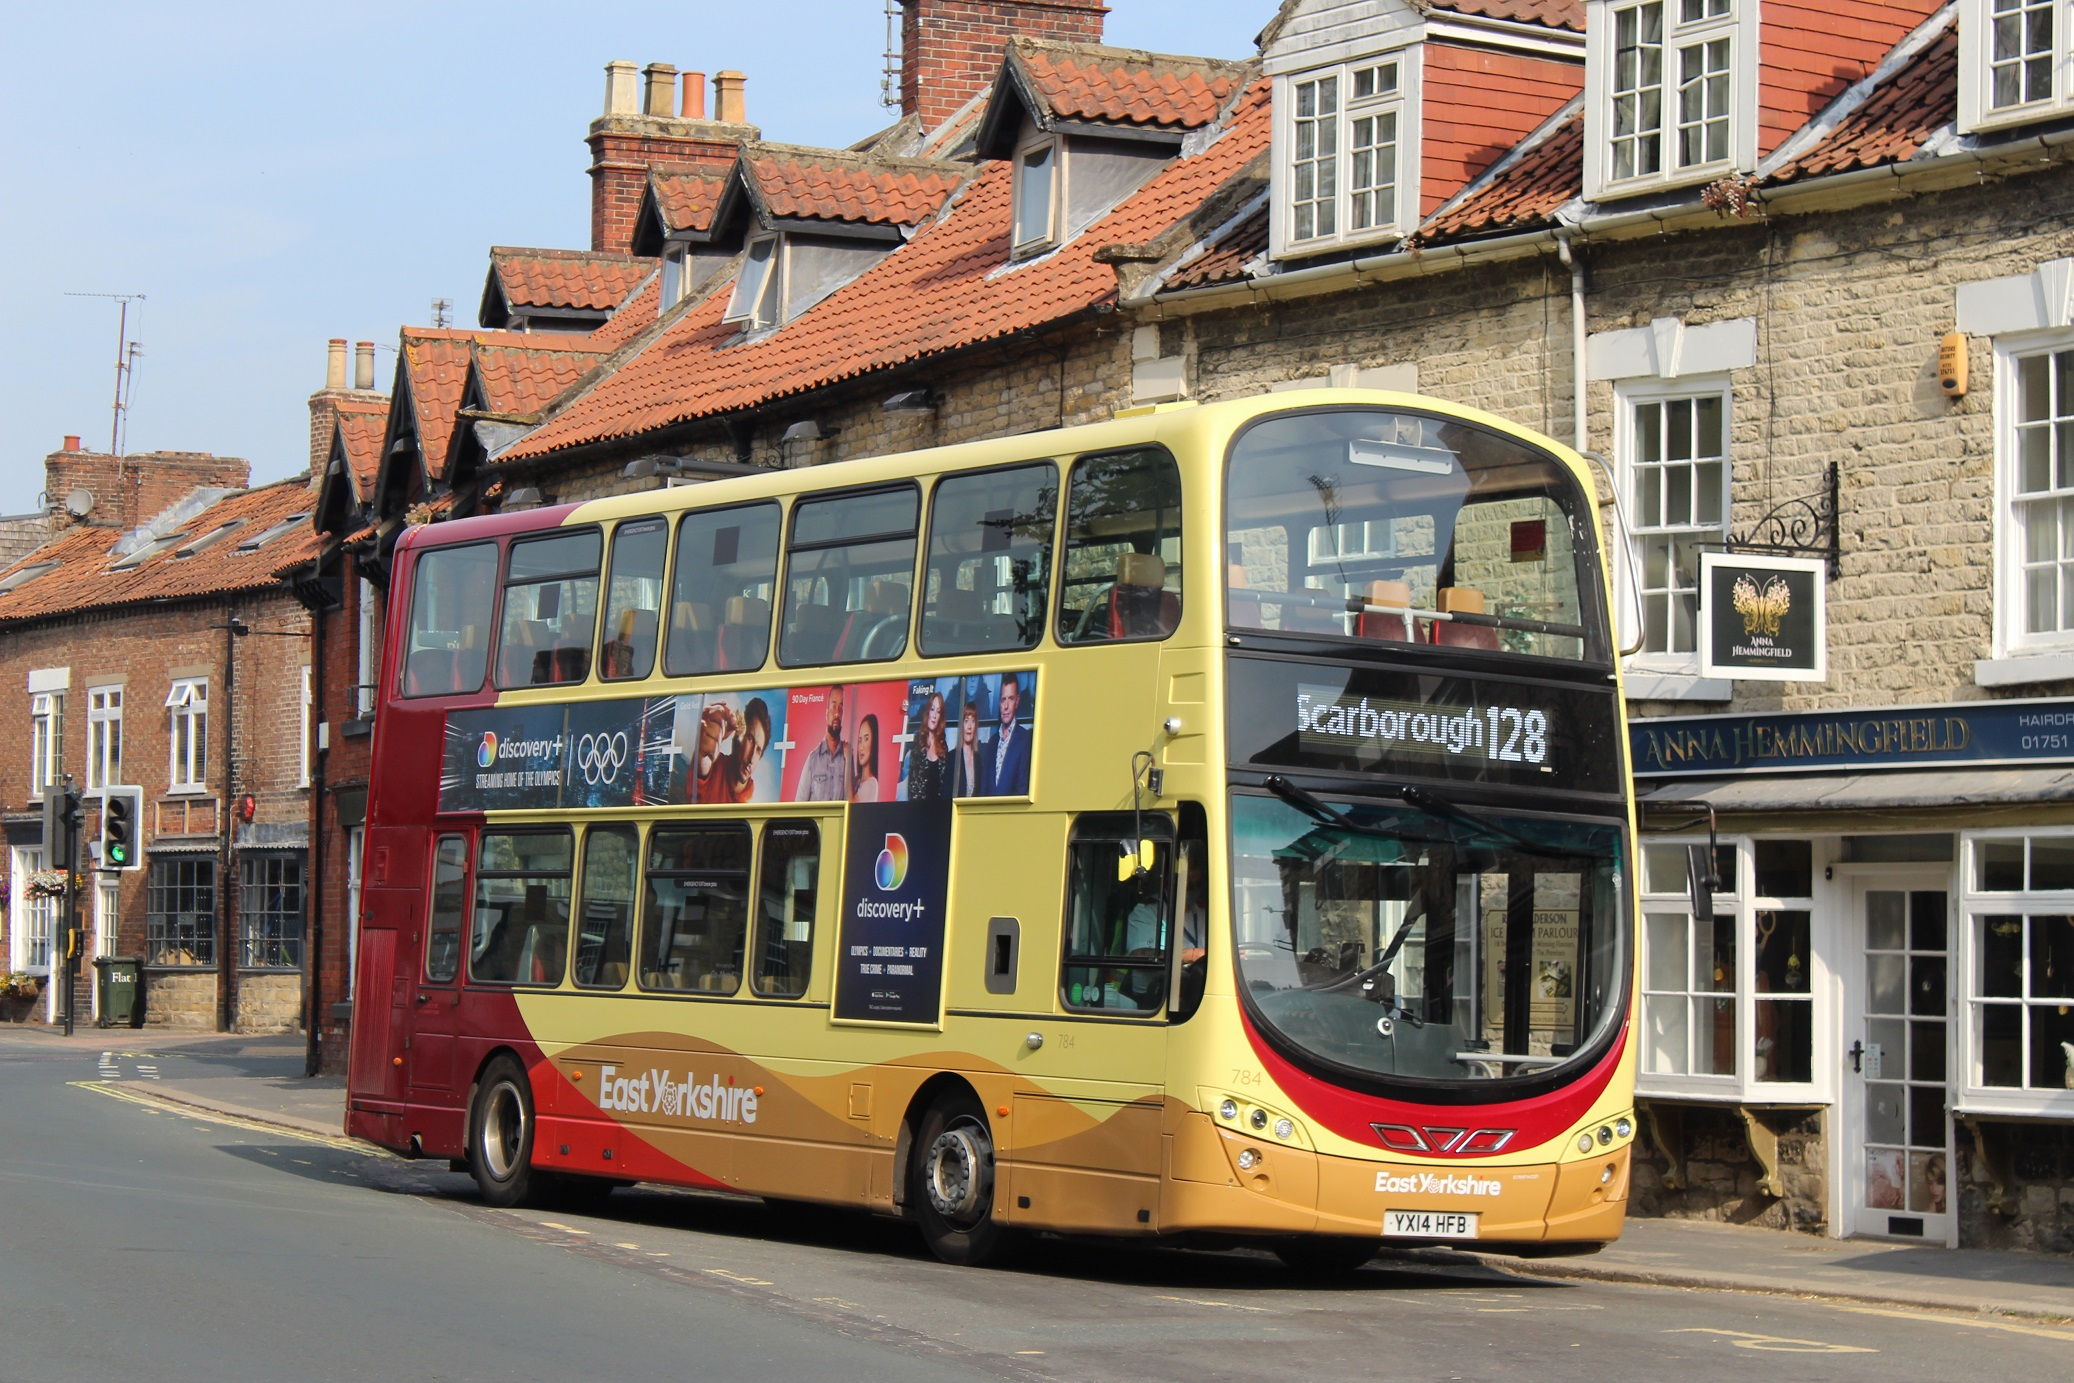 An East Yorkshire double decker Service 128 bus outside old buildings in Thornton Le Dale